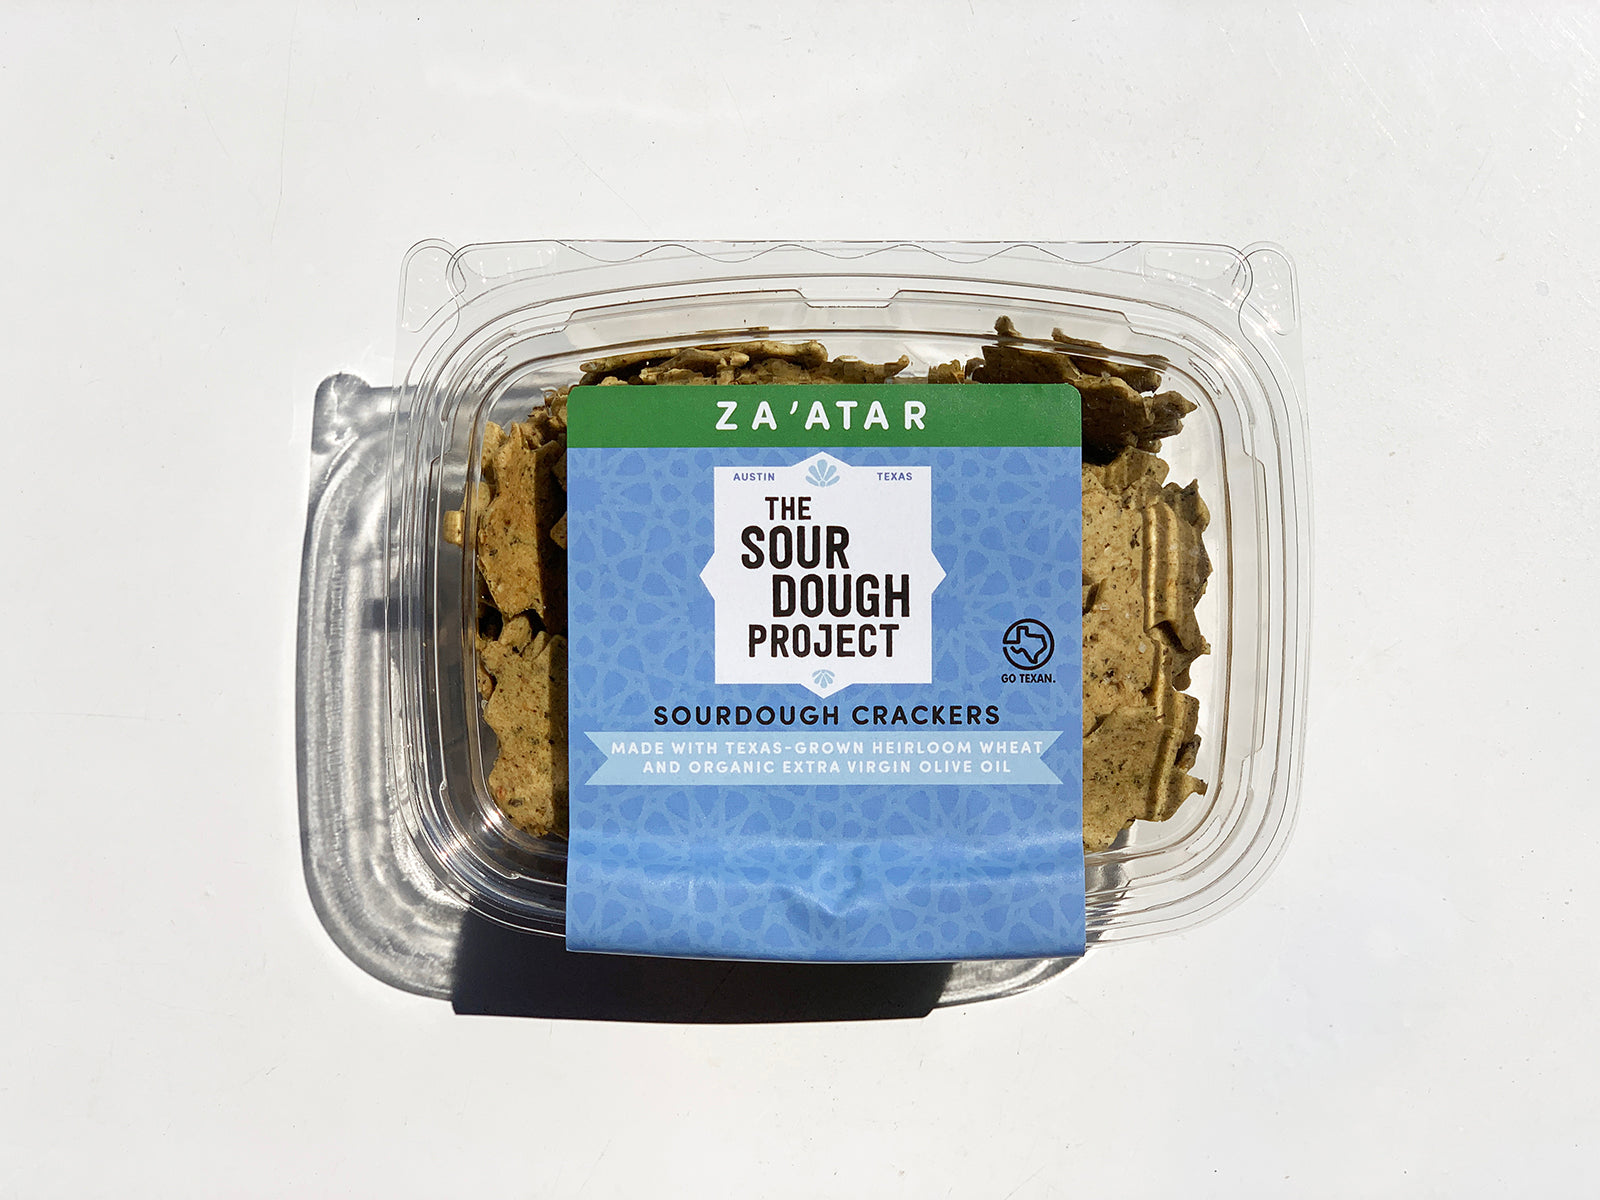 The Sourdough Project crackers in Za'atar flavor